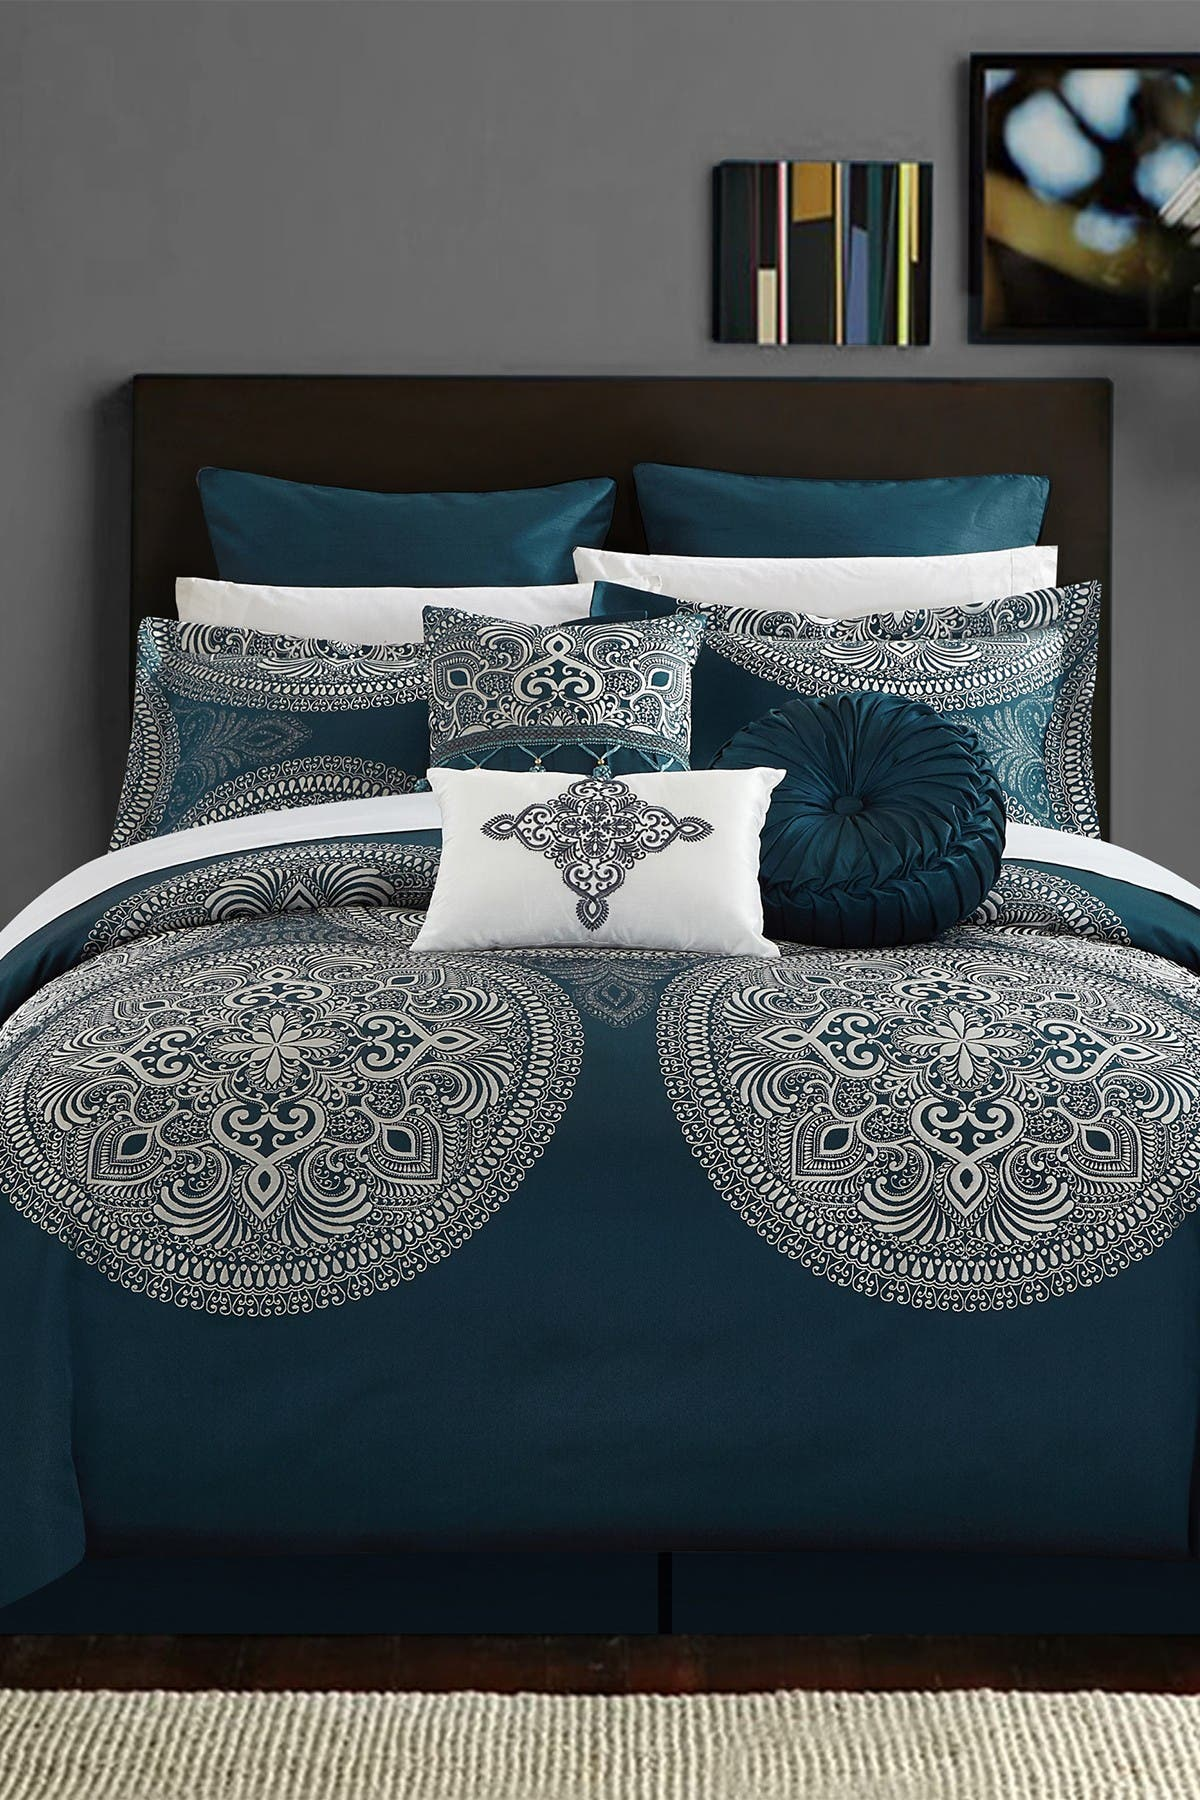 Image of Chic Home Bedding King Lira Faux Silk Luxury Large Medalion Jacquard with Embroidery Details and Trims Comforter 9-Piece Set - Blue